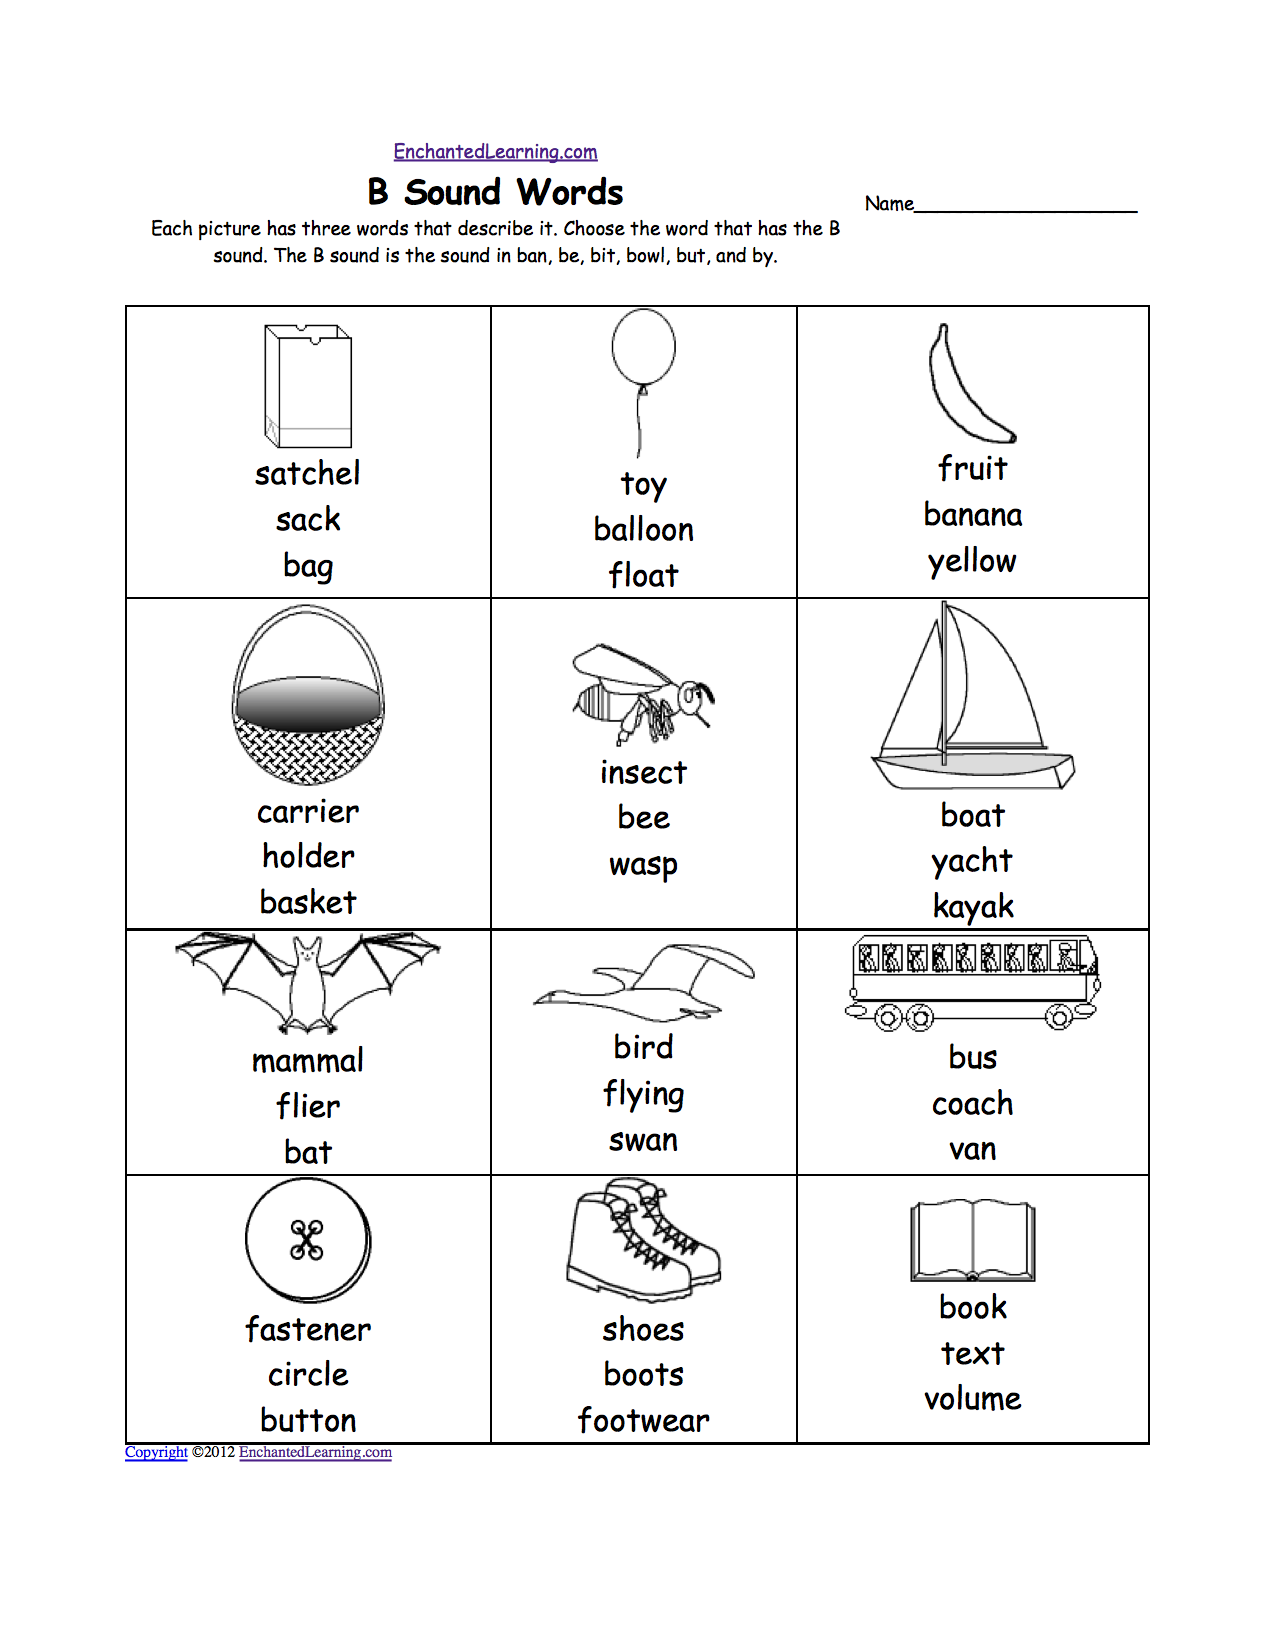 Weirdmailus  Pleasant Phonics Worksheets Multiple Choice Worksheets To Print  With Extraordinary Quotbquot Sound Phonics Worksheet Multiple Choice Each Picture Has Three Words That Describe It Choose The Word That Has A Quotbquot Sound The Quotbquot Sound Is The Sound  With Captivating Factorization Worksheet Also Free Printable Th Grade Science Worksheets In Addition Px Workout Worksheets And Half Hour Worksheets As Well As Net Worth Statement Worksheet Additionally Smart Goal Worksheet Pdf From Enchantedlearningcom With Weirdmailus  Extraordinary Phonics Worksheets Multiple Choice Worksheets To Print  With Captivating Quotbquot Sound Phonics Worksheet Multiple Choice Each Picture Has Three Words That Describe It Choose The Word That Has A Quotbquot Sound The Quotbquot Sound Is The Sound  And Pleasant Factorization Worksheet Also Free Printable Th Grade Science Worksheets In Addition Px Workout Worksheets From Enchantedlearningcom